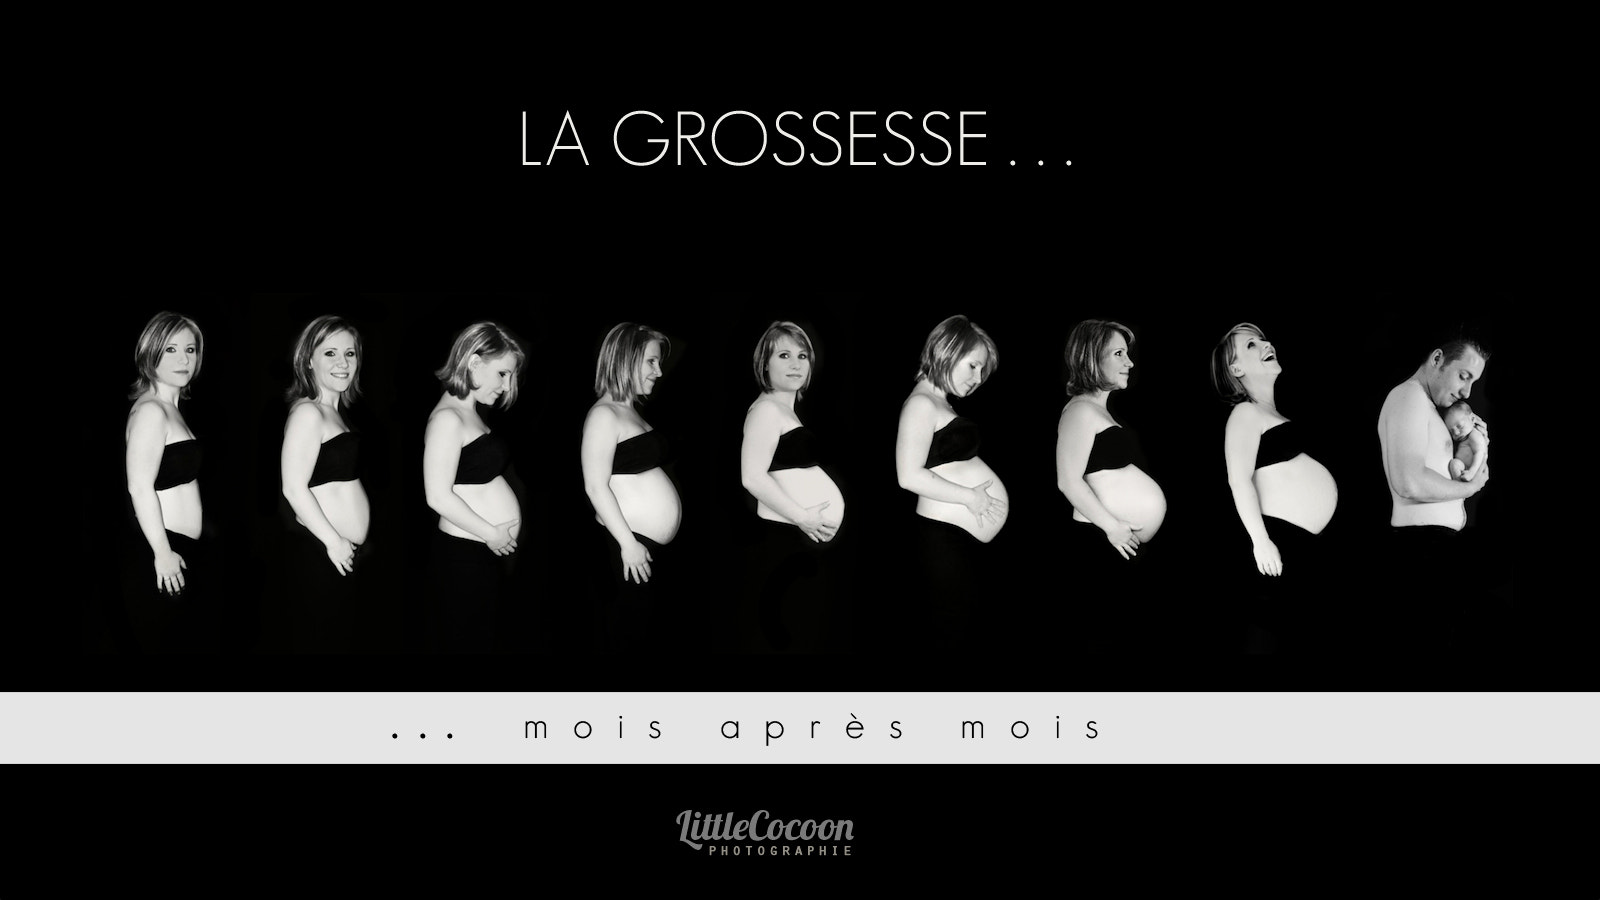 Photograph • La grossesse... by Little Cocoon on 500px